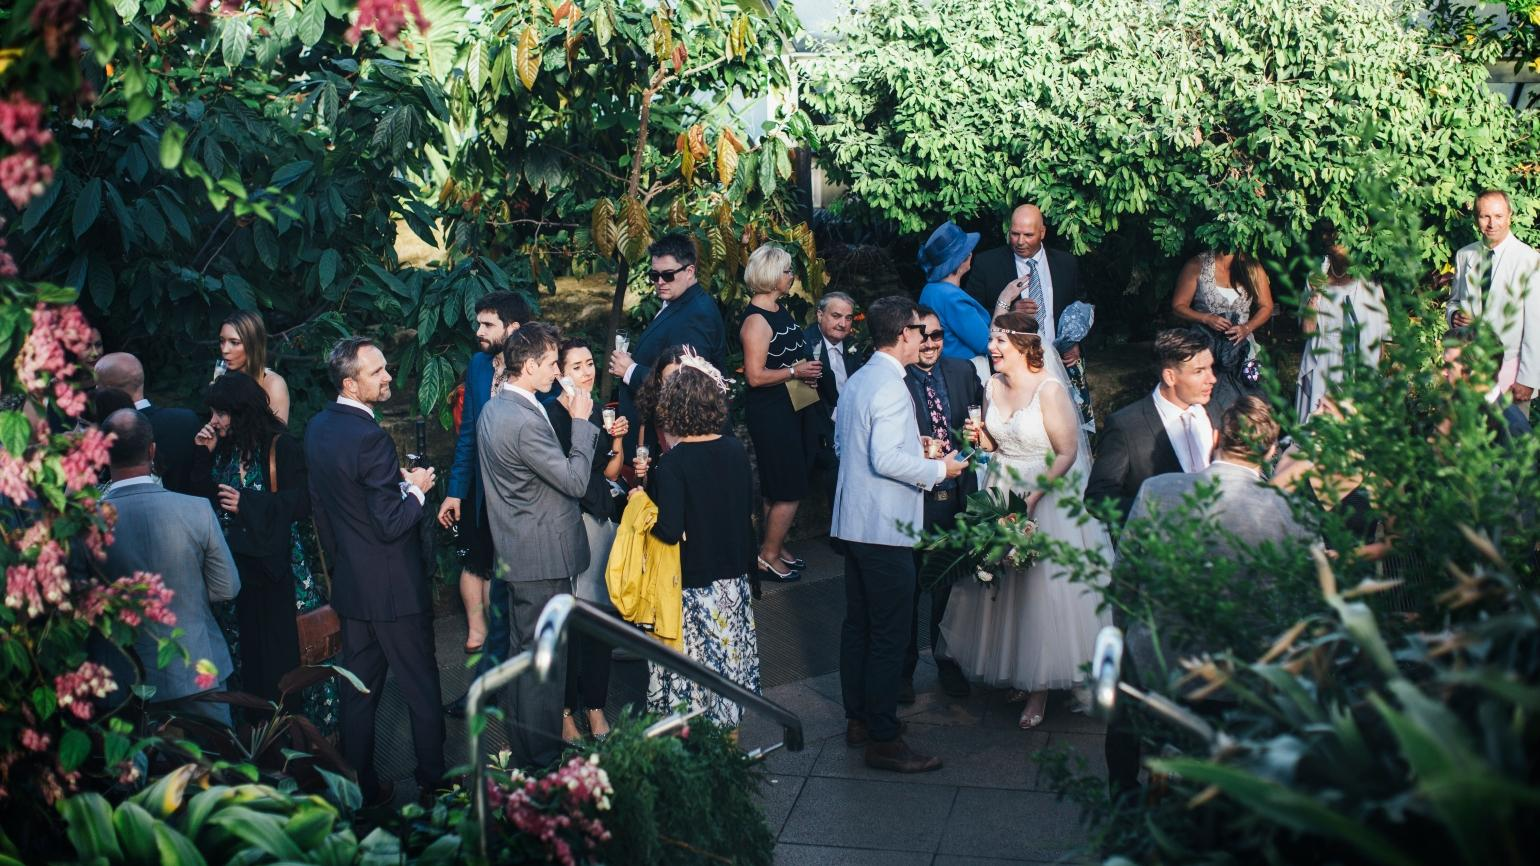 A drinks reception in the Princess of Wales Conservatory